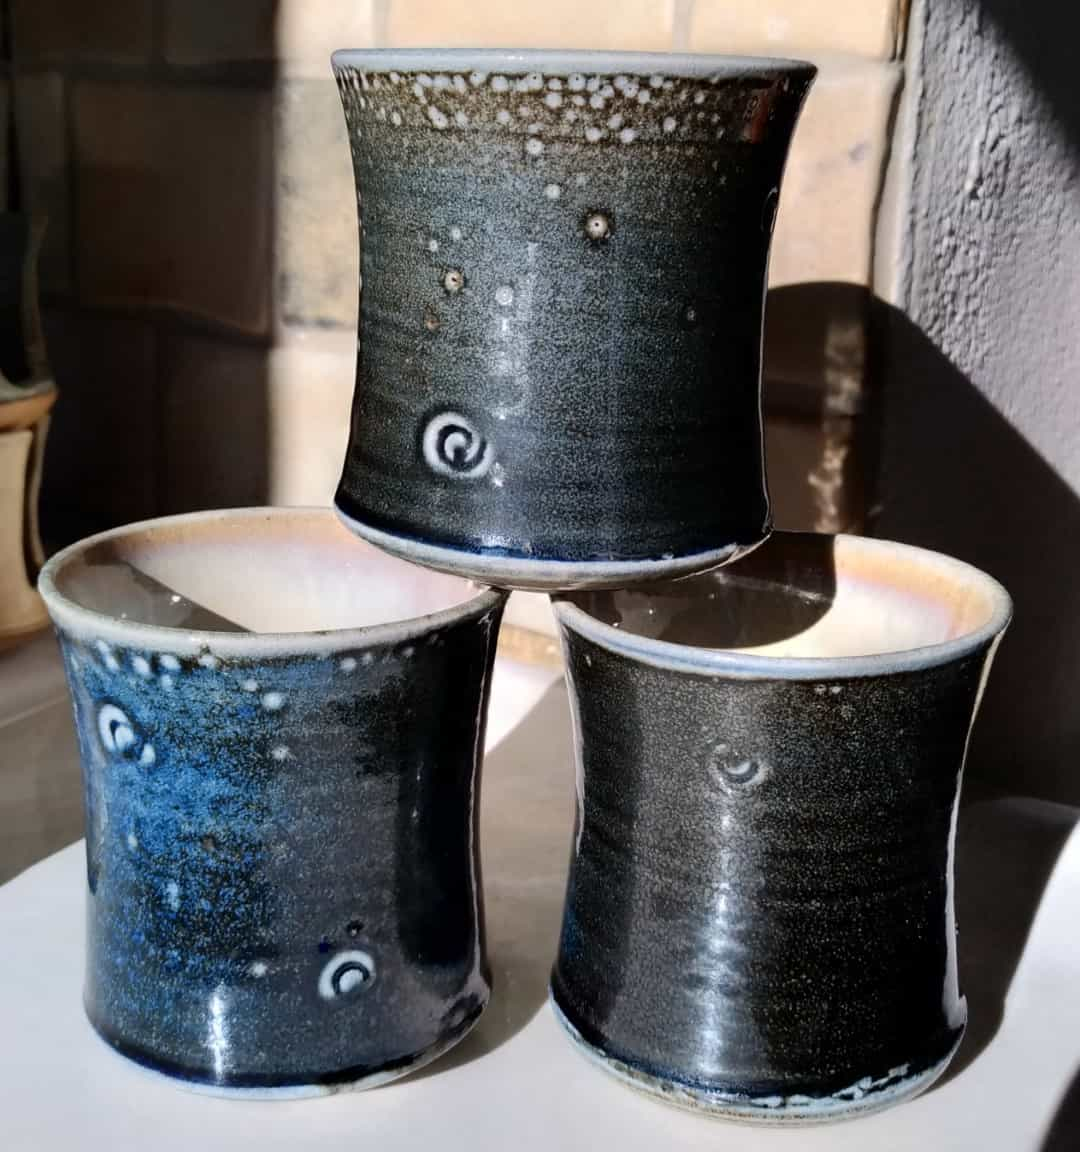 Midnight cups (Large)